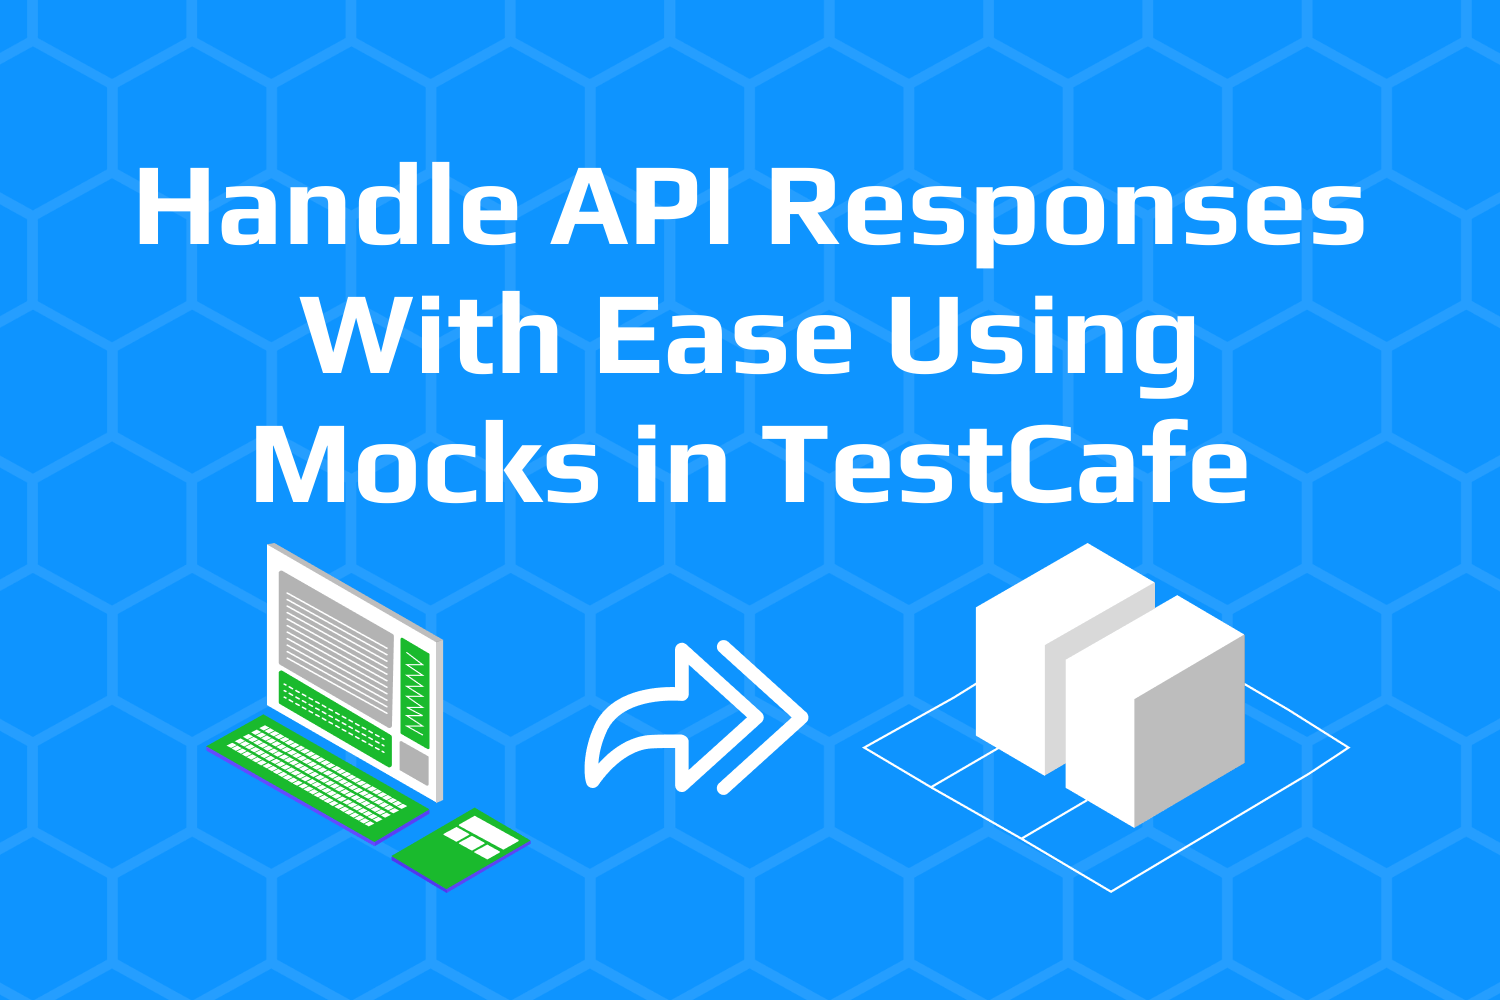 Handle API Responses With Ease Using Mocks in TestCafe